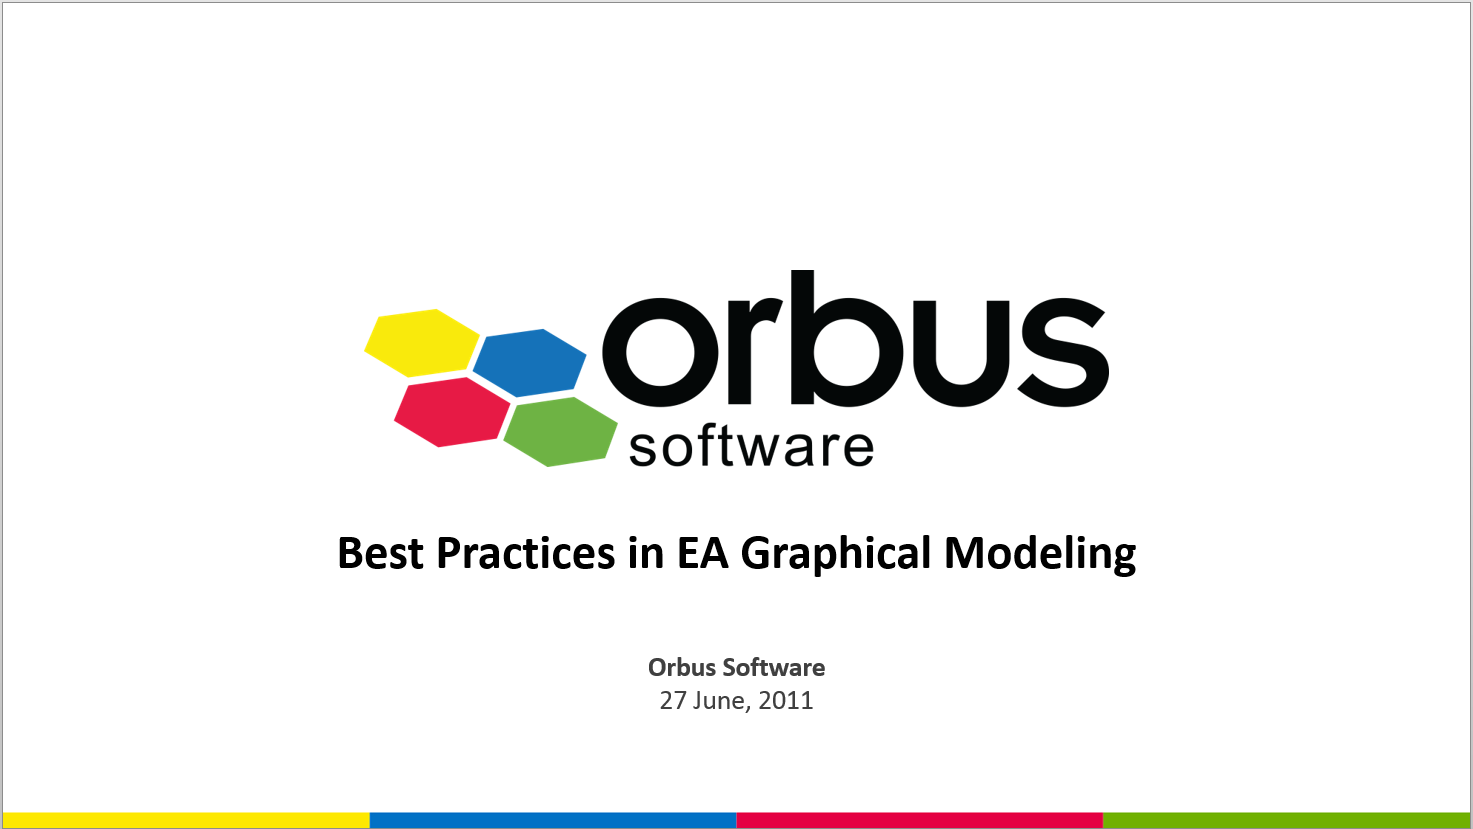 Best Practices in EA Graphical Modelling